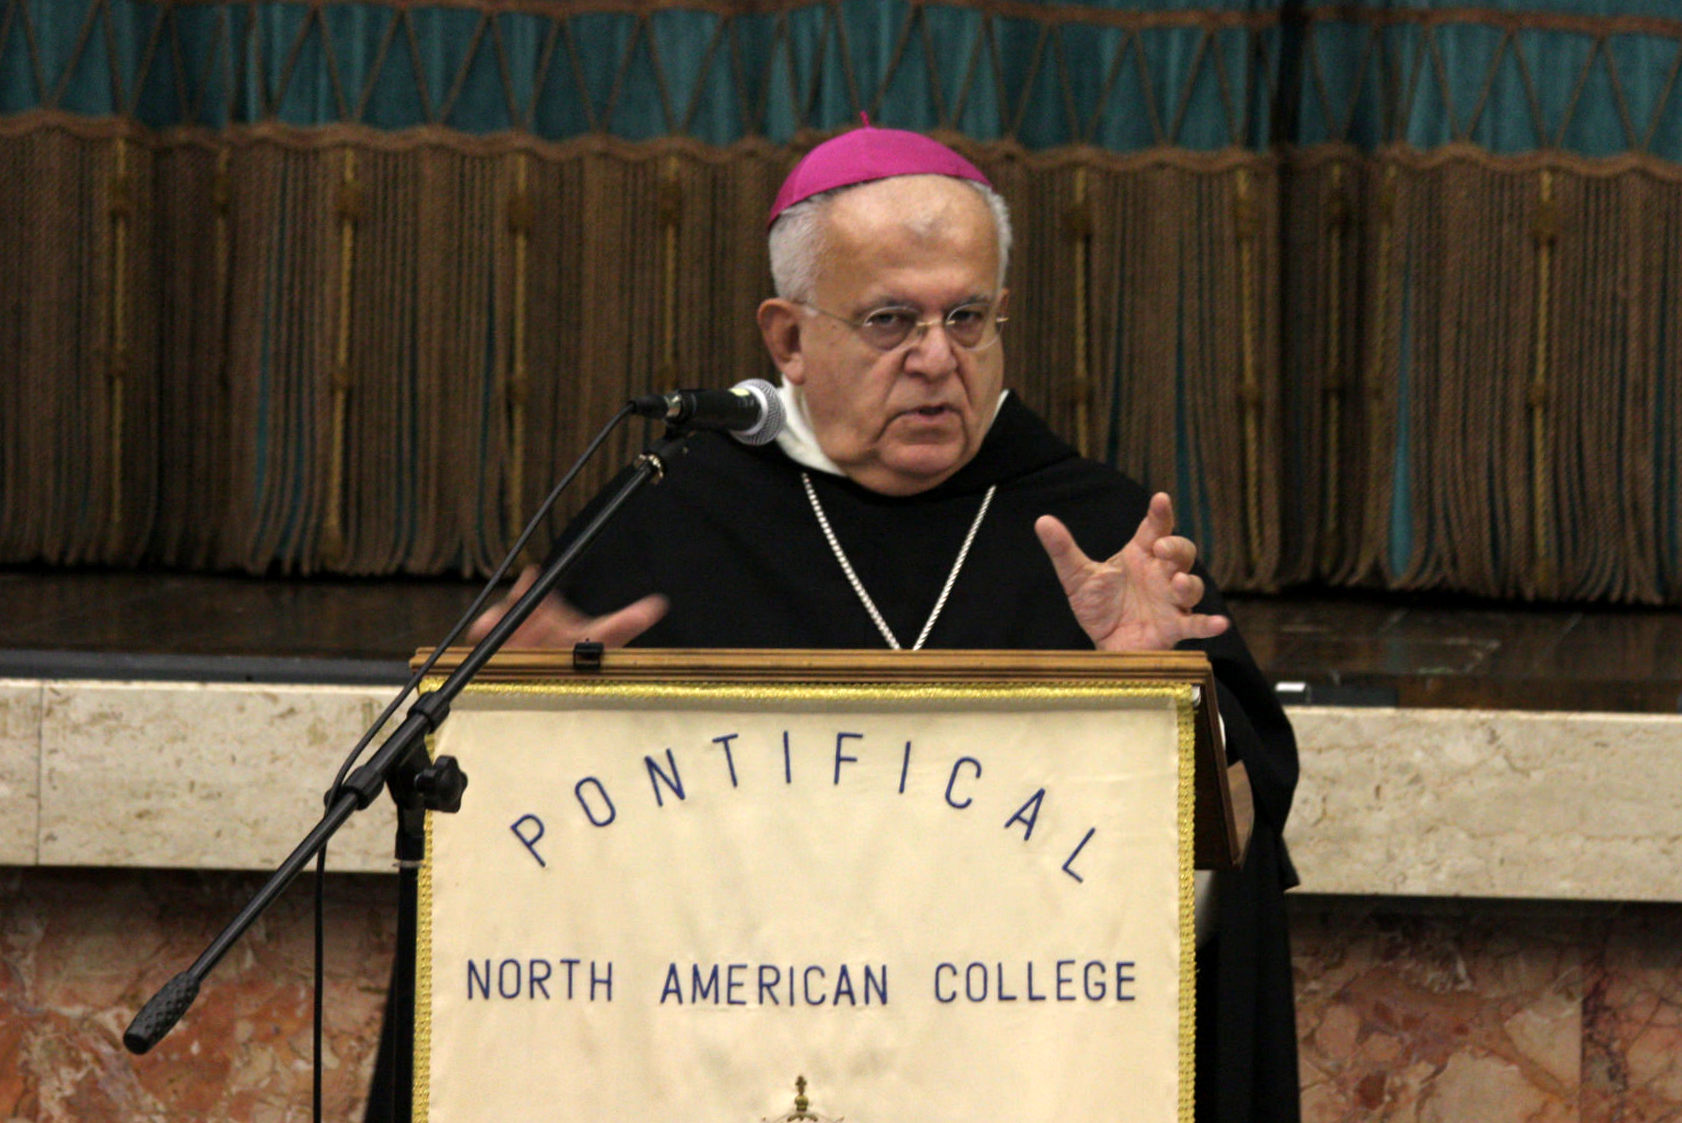 archbishop di noia carl j peters lecture